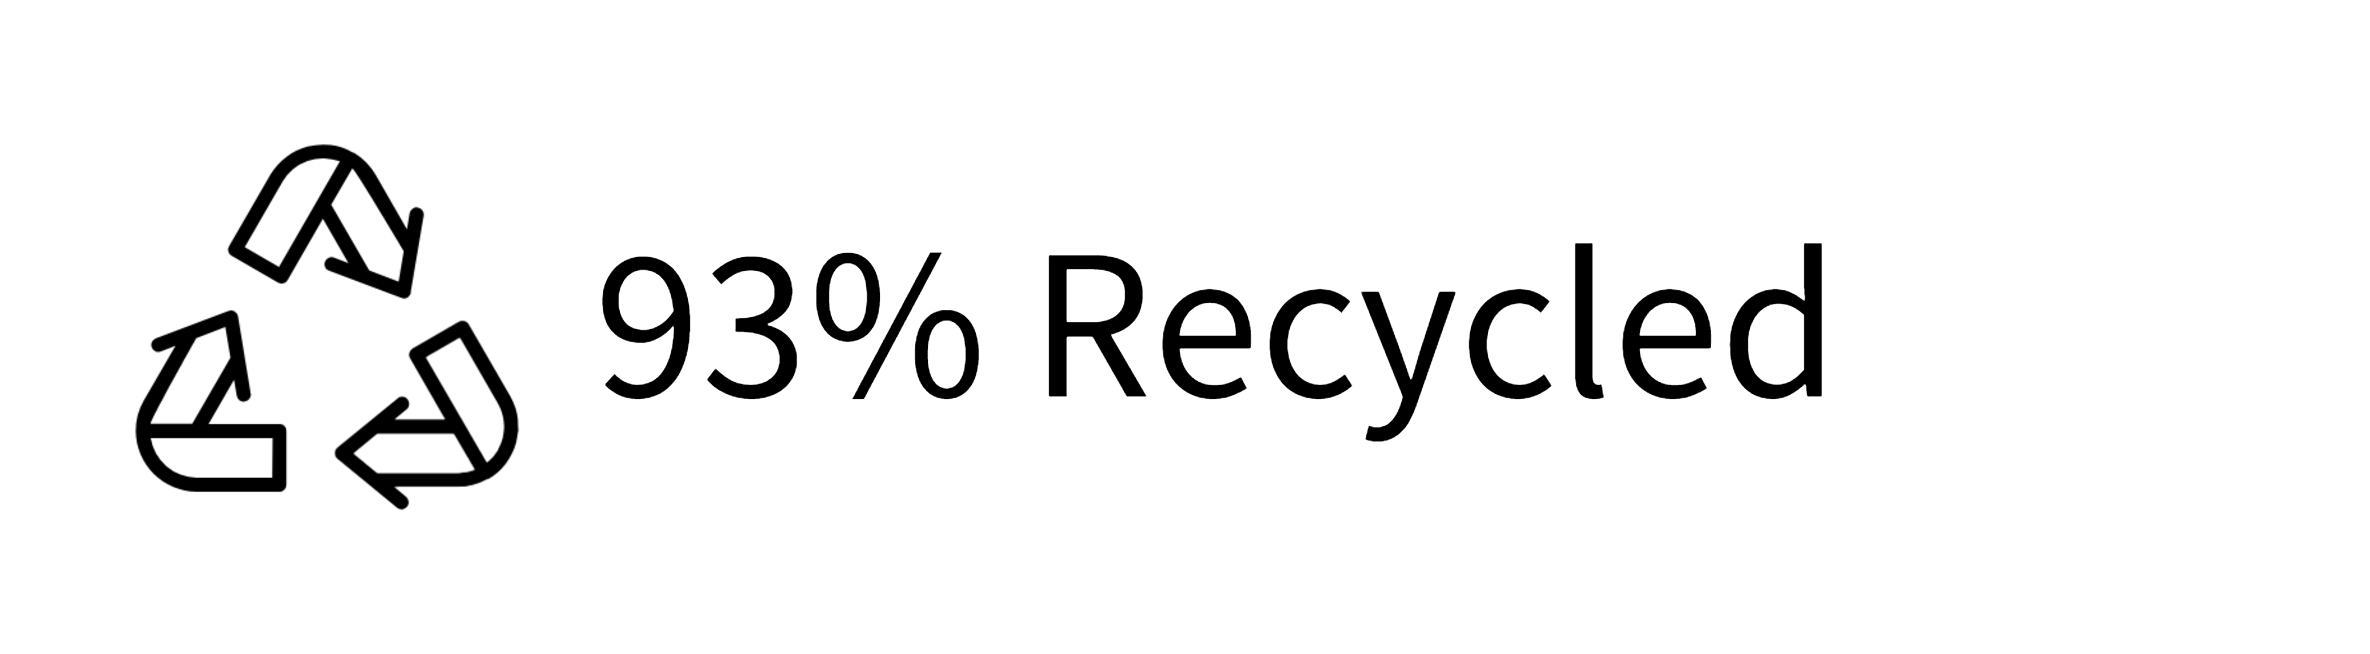 93% Recycled